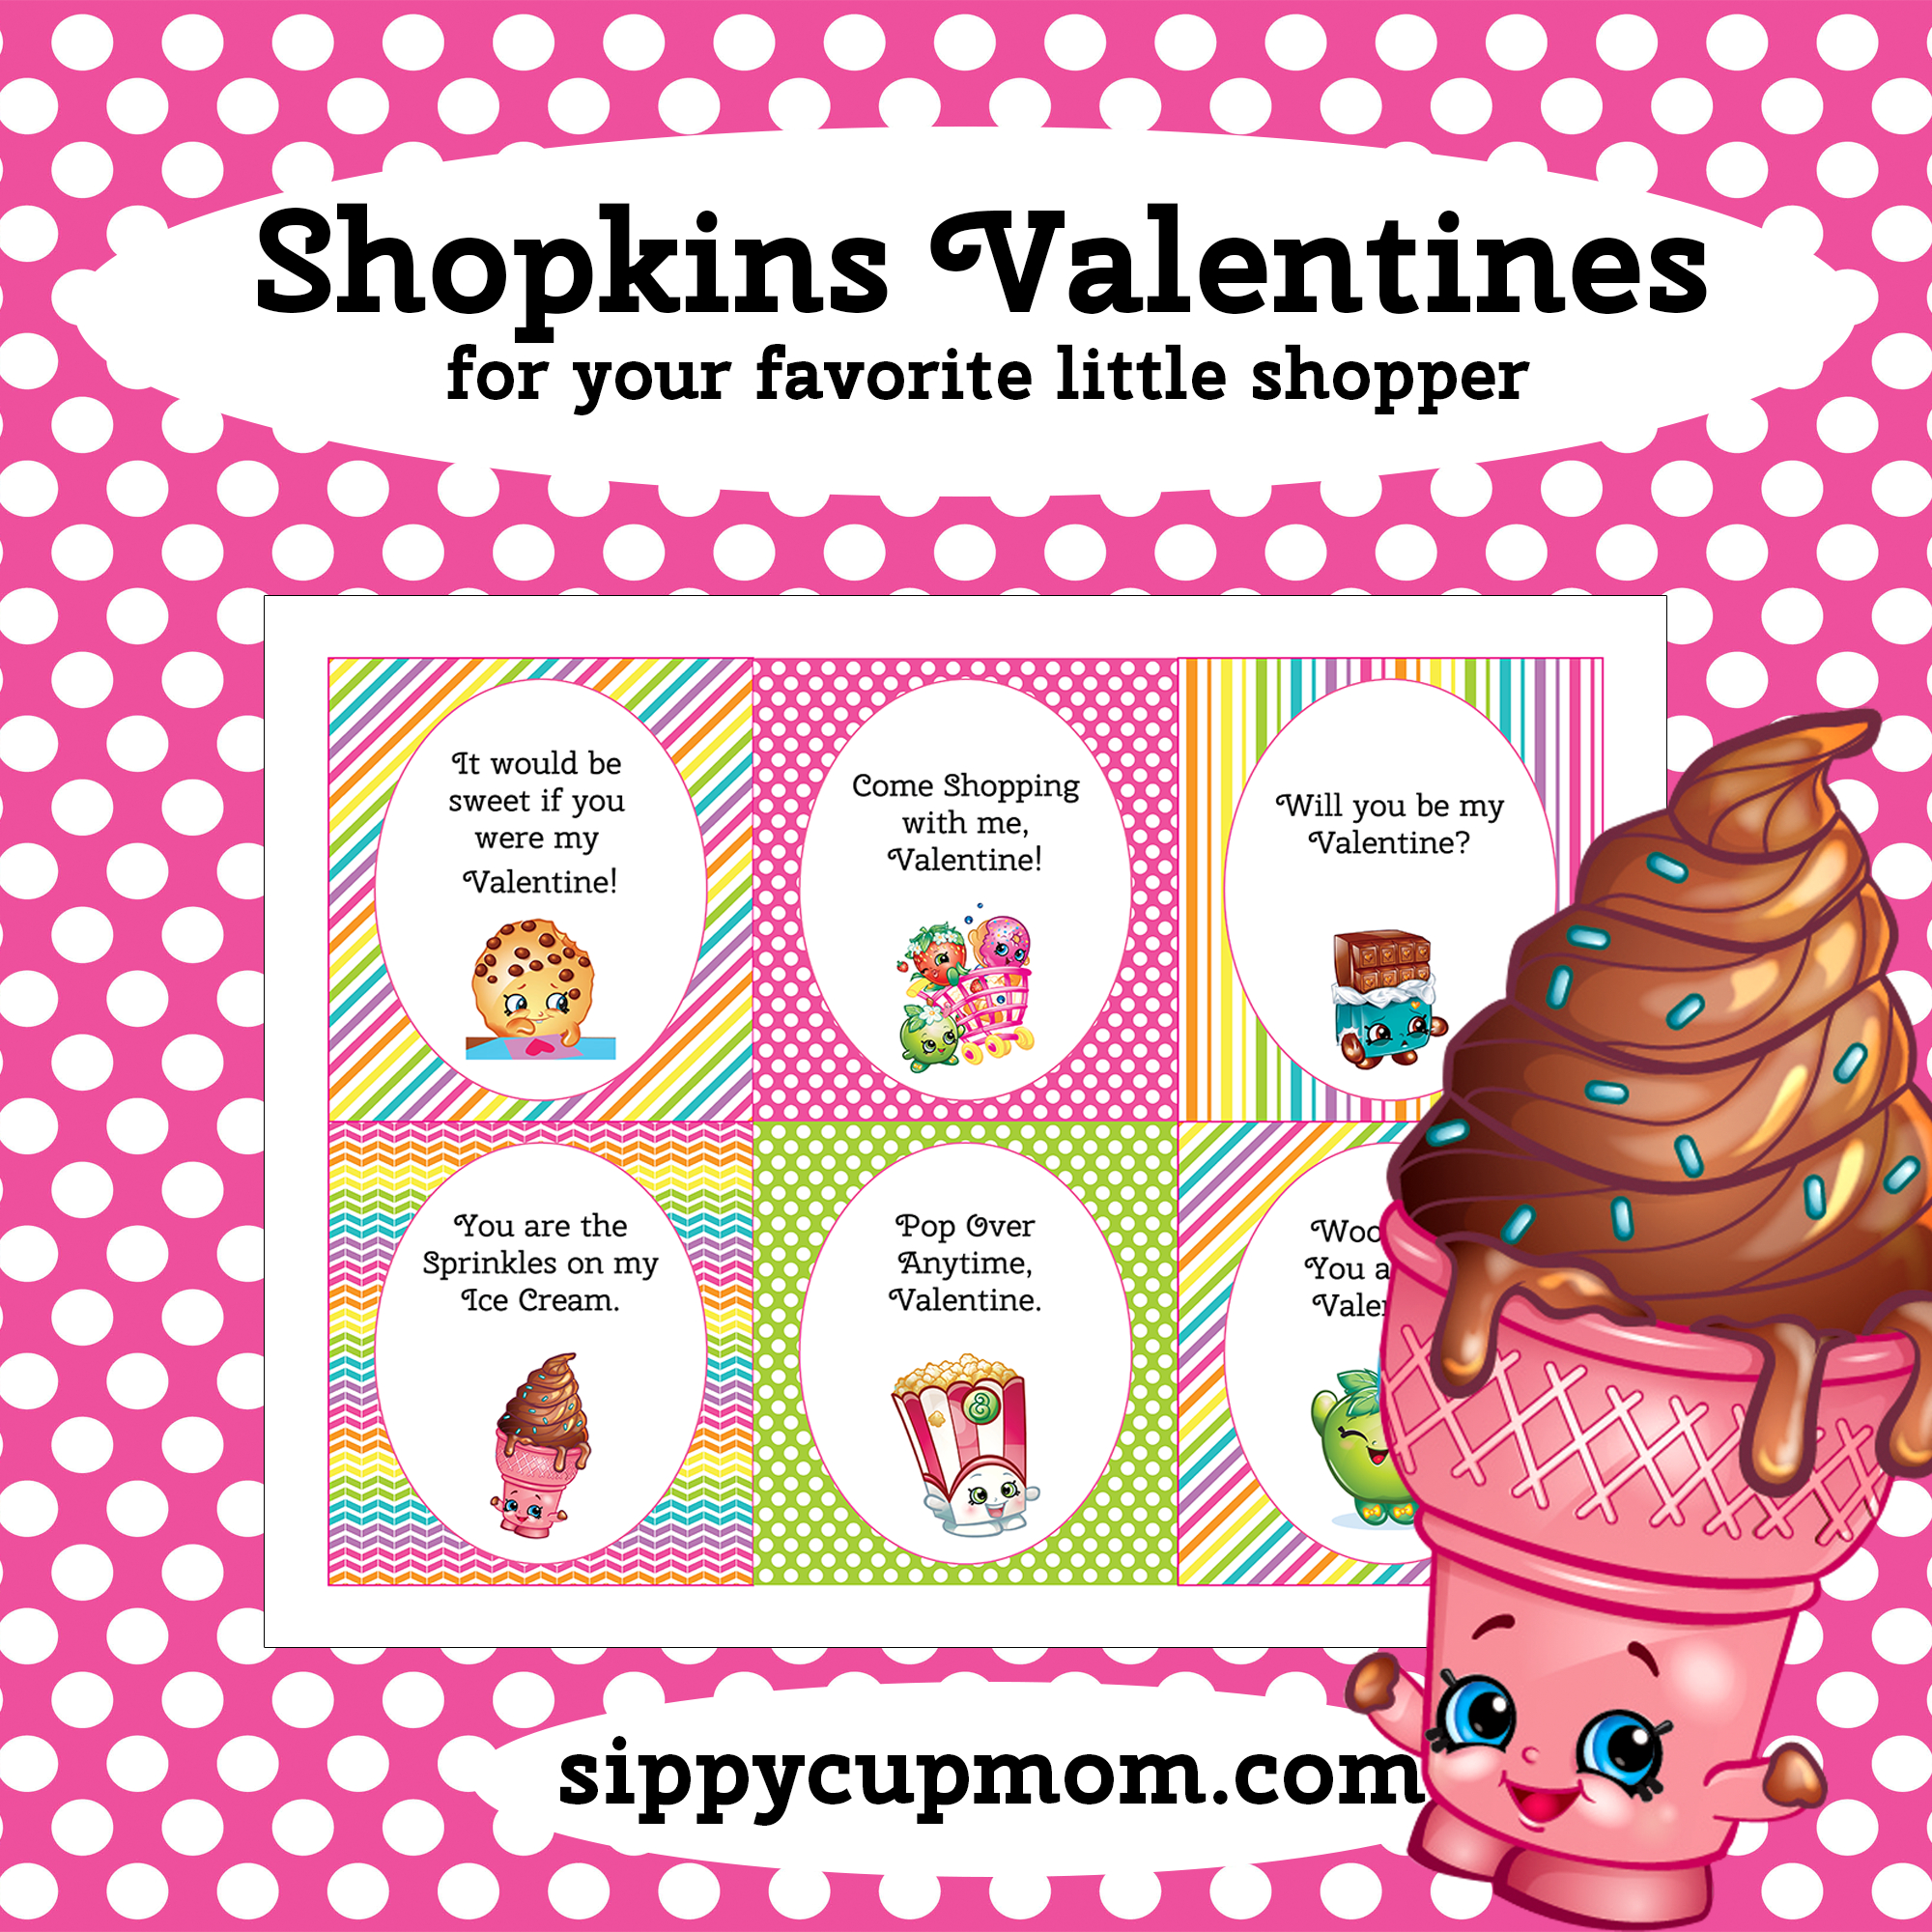 Free Printable Shopkins Valentine's Day Cards - Sippy Cup Mom - Free Printable Valentines Day Cards For Mom And Dad